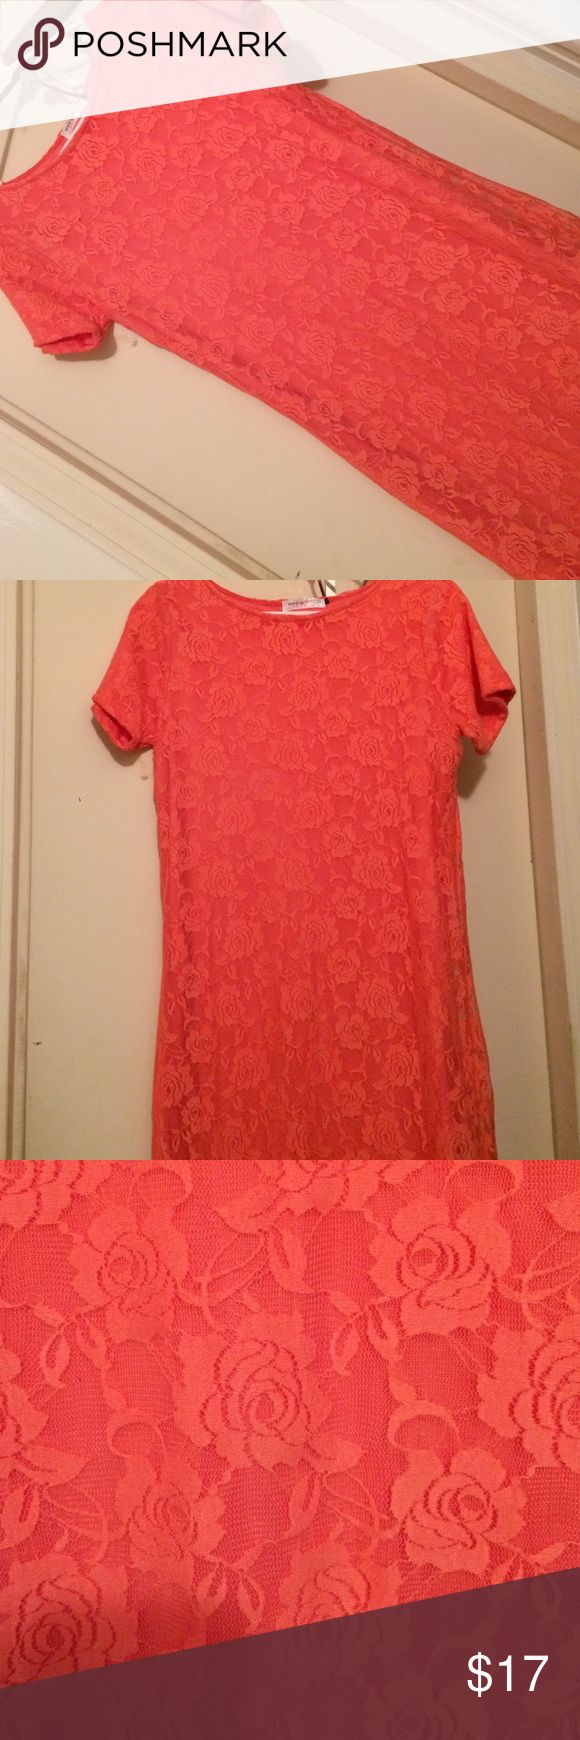 Peach lace dress Peach full lace dress, knee length! Great for Easter/spring events. No snags or issues Dresses Midi